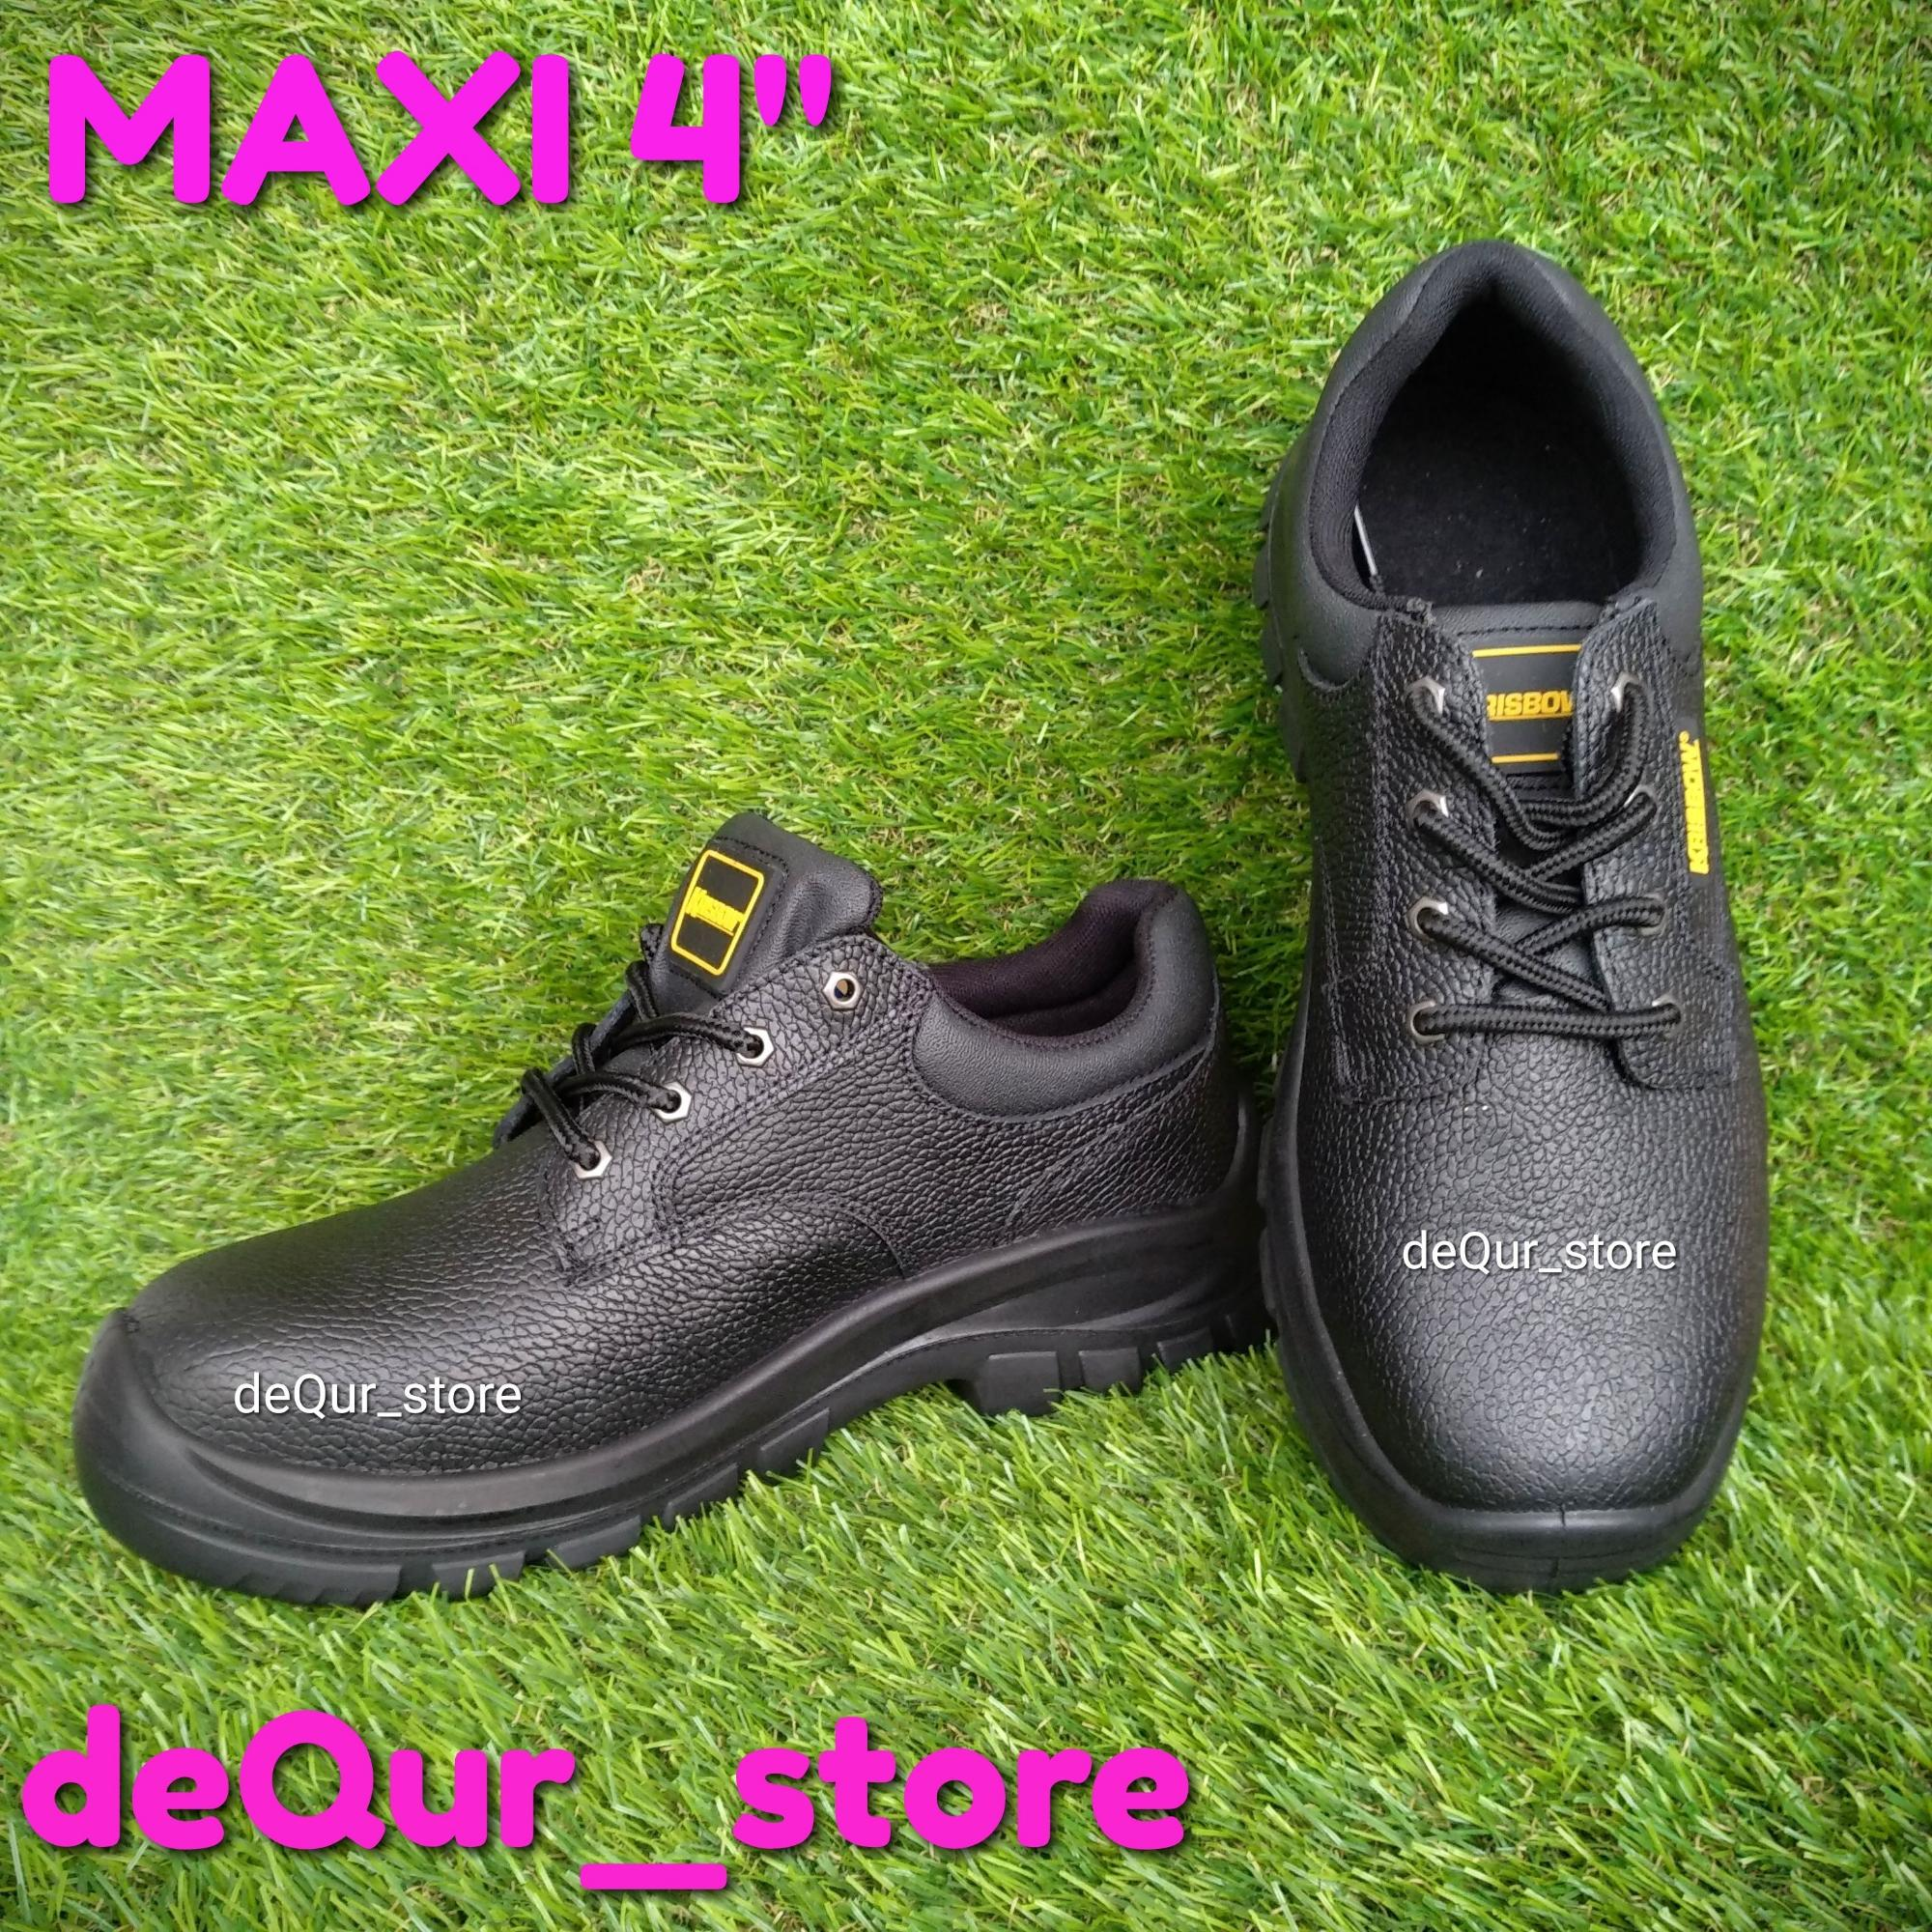 Safety shoes krisbow tipe Maxi 4 inch sepatu pengaman krisbow tipe MAXI 4  inch dedbfaca17